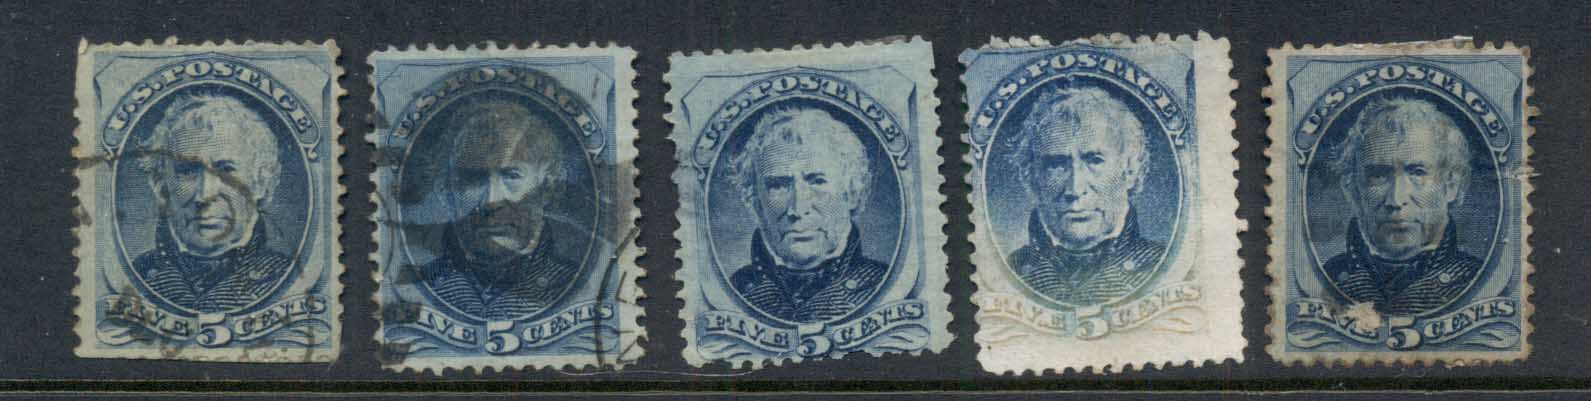 USA 1879 Sc#185 5c Zachary Taylor, Large Banknote, seconds FU